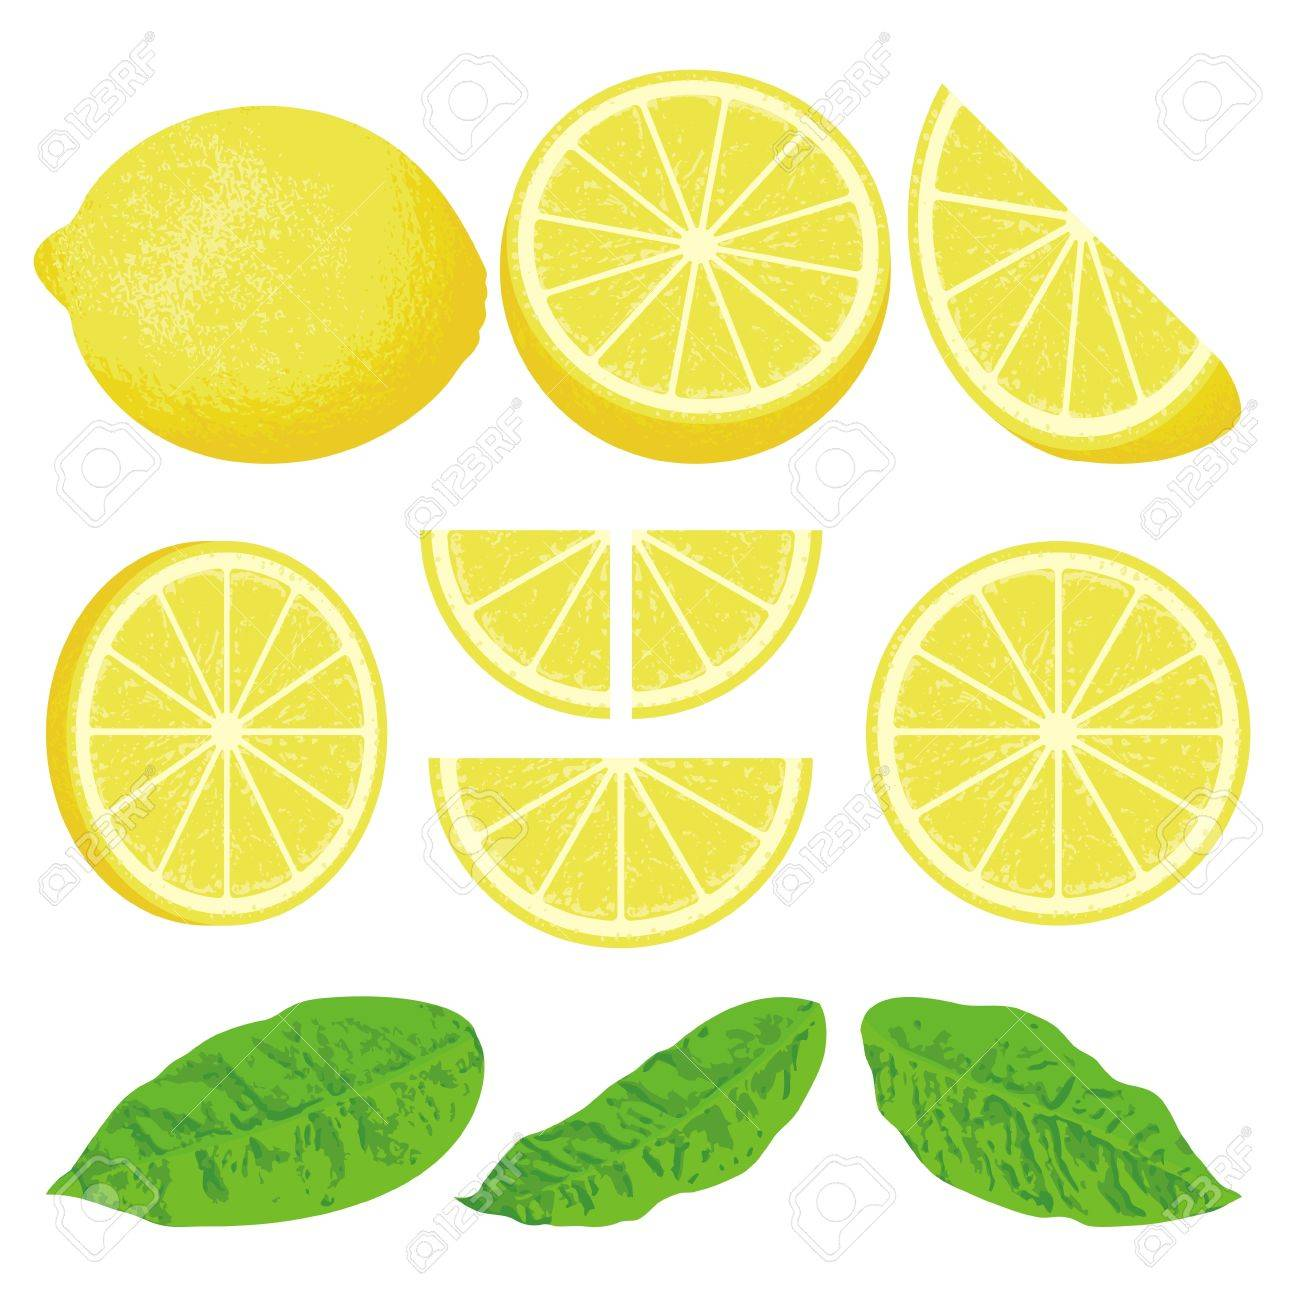 A whole lemon and slices at different angles, also three versions of leaves. - 10537527